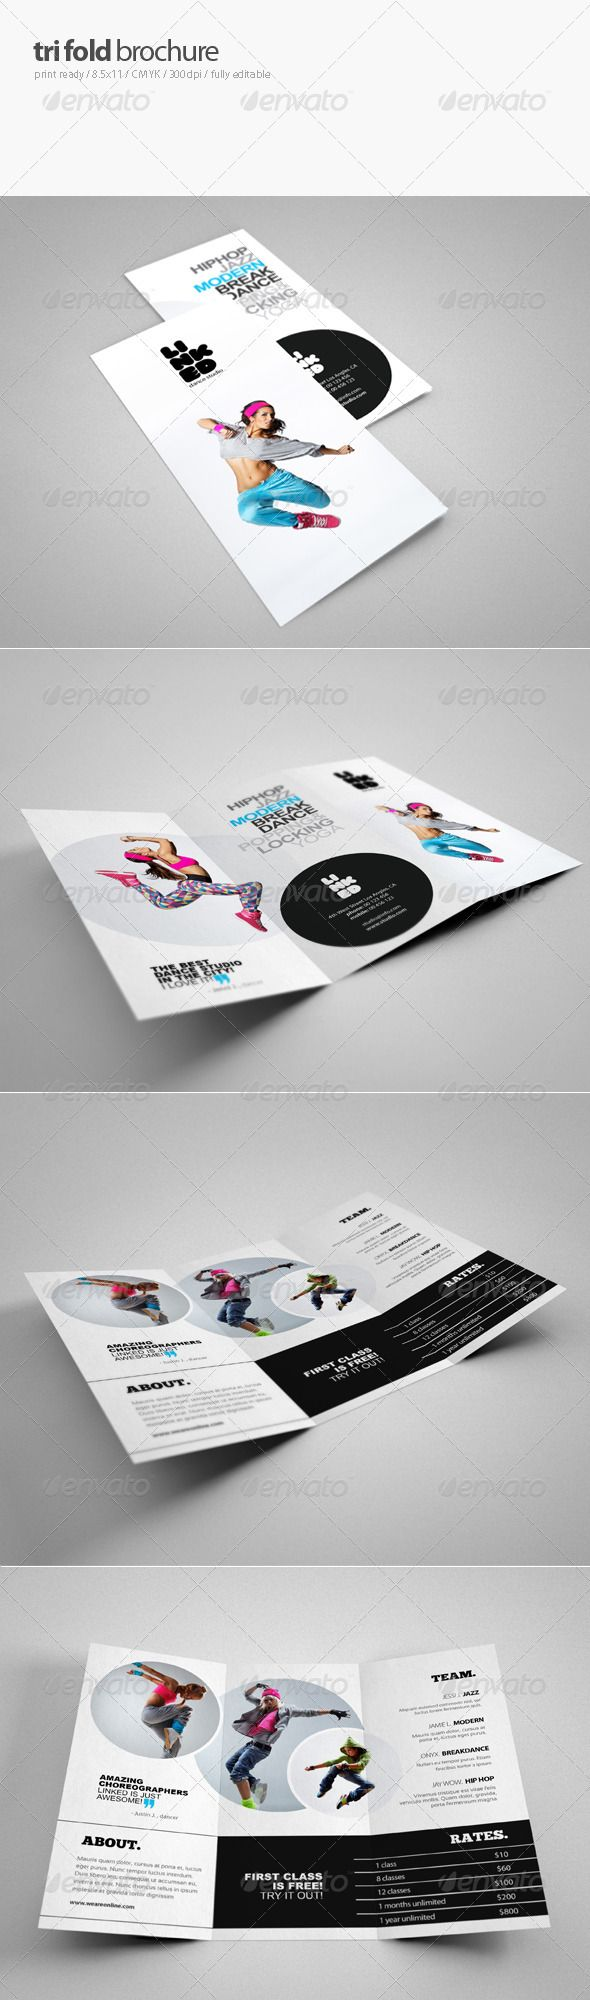 Dance Studio Brochure   Dance Studio Brochures And Print Templates